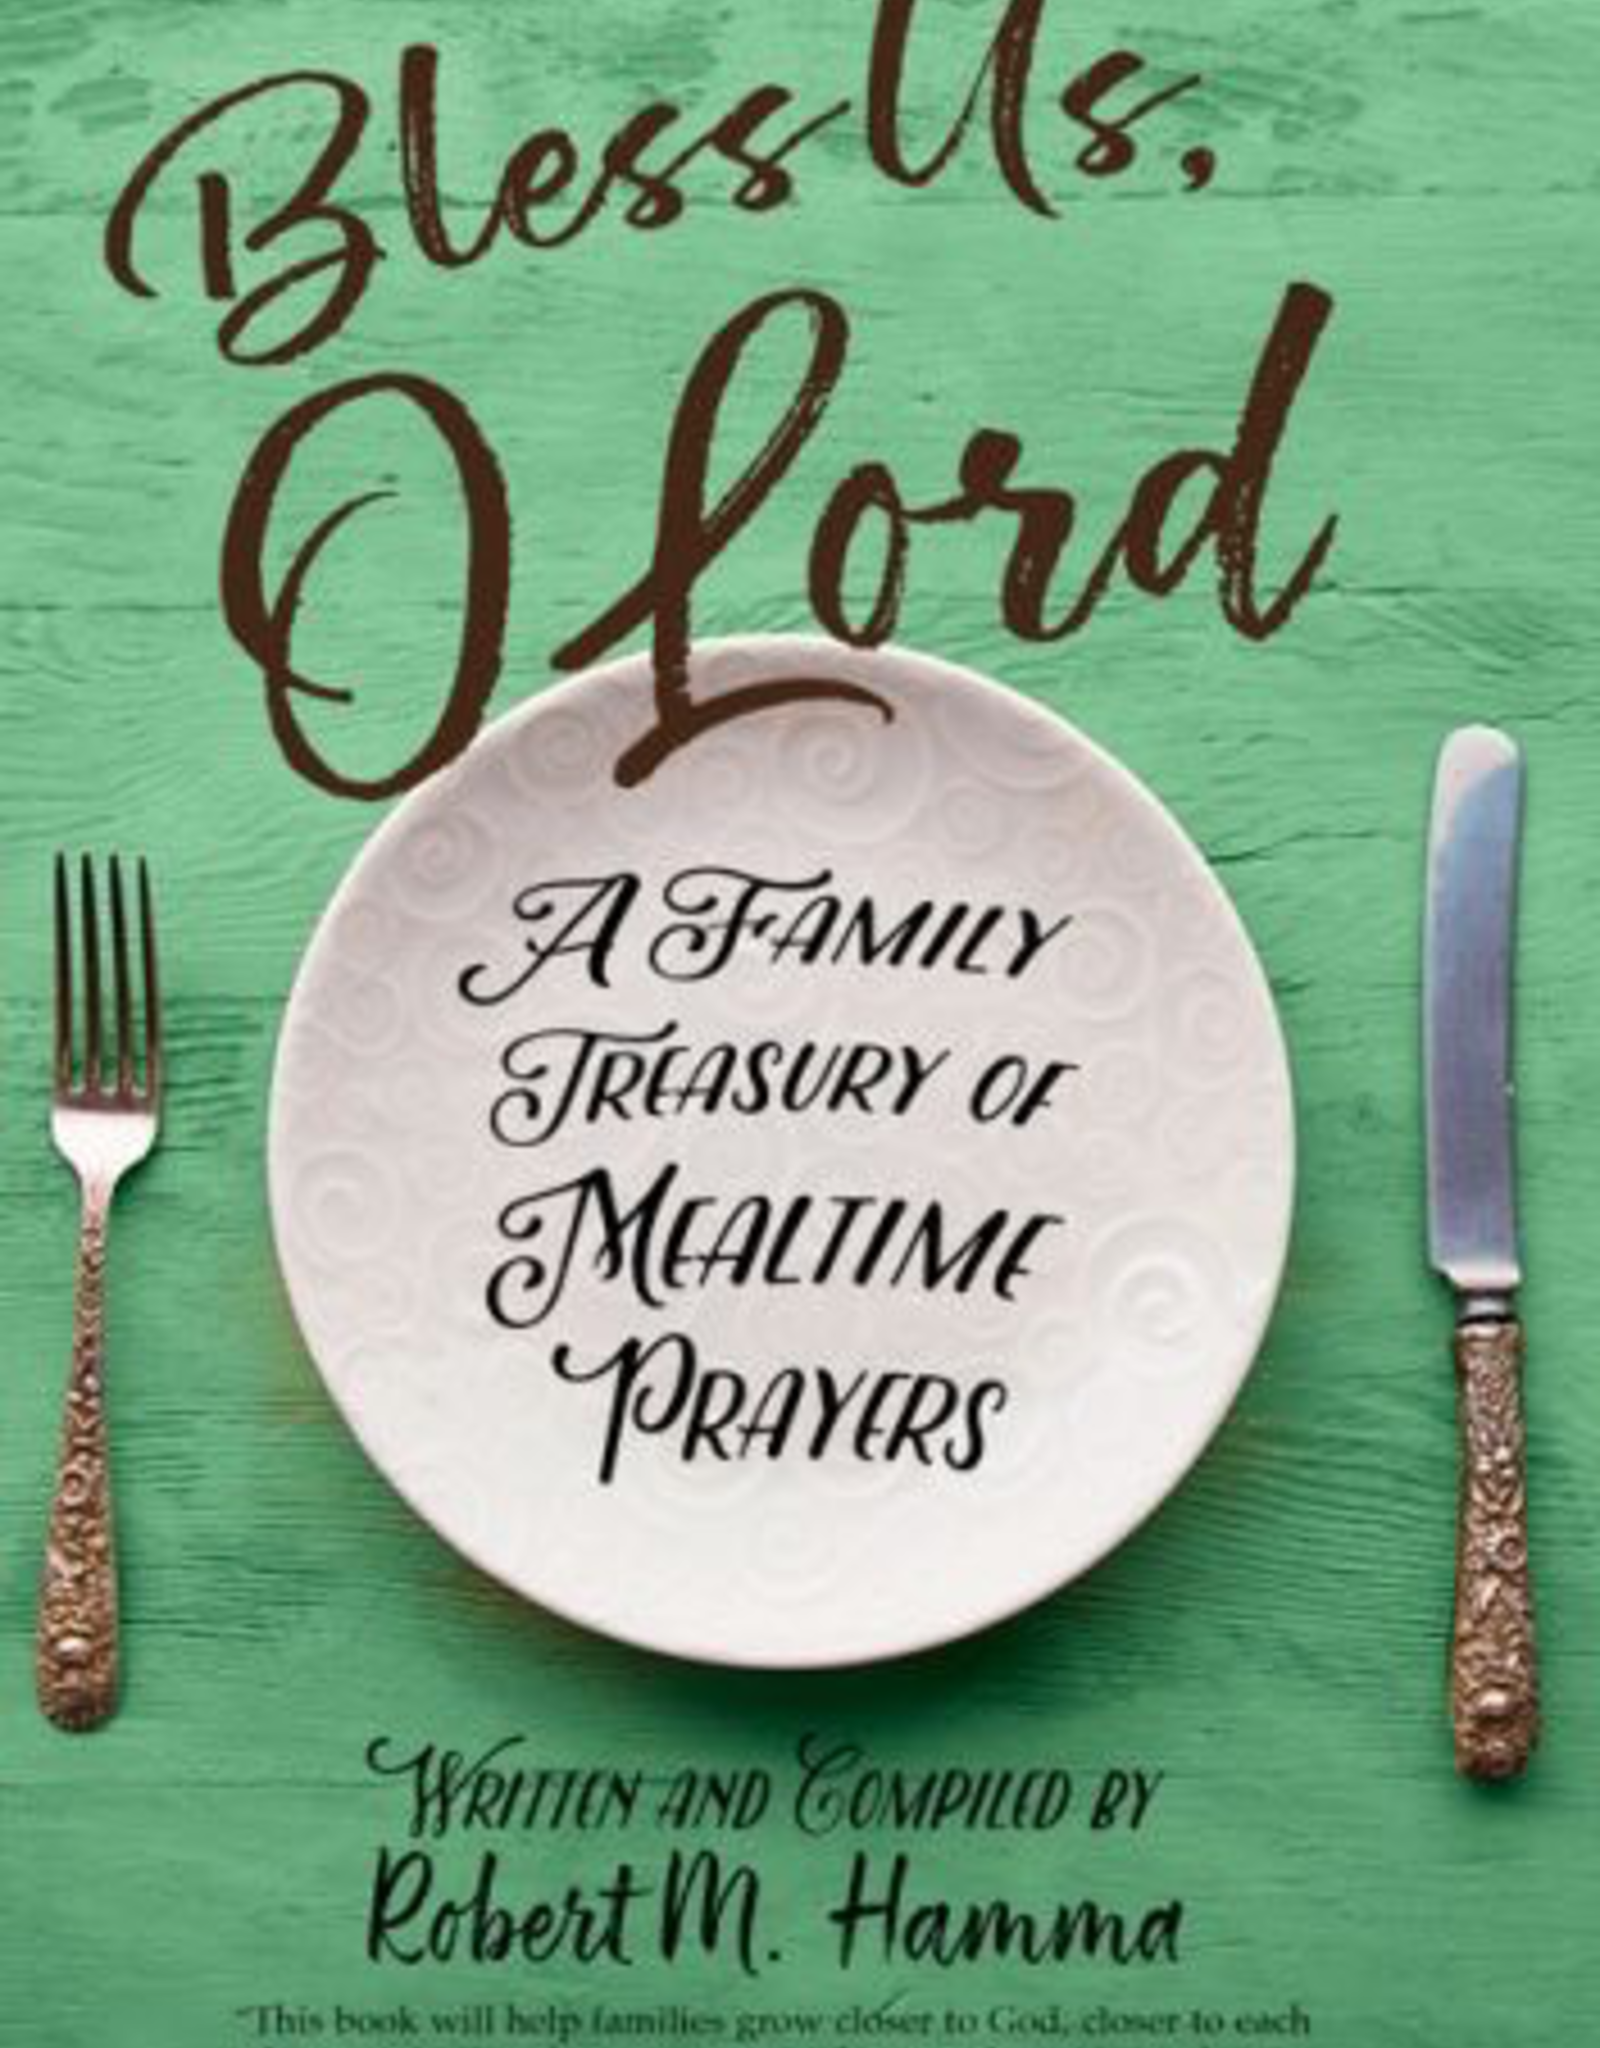 Ave Maria Press Bless Us Oh Lord:  A Family Treasury of Mealtime Prayers, by Robert M. Hamma (paperback)